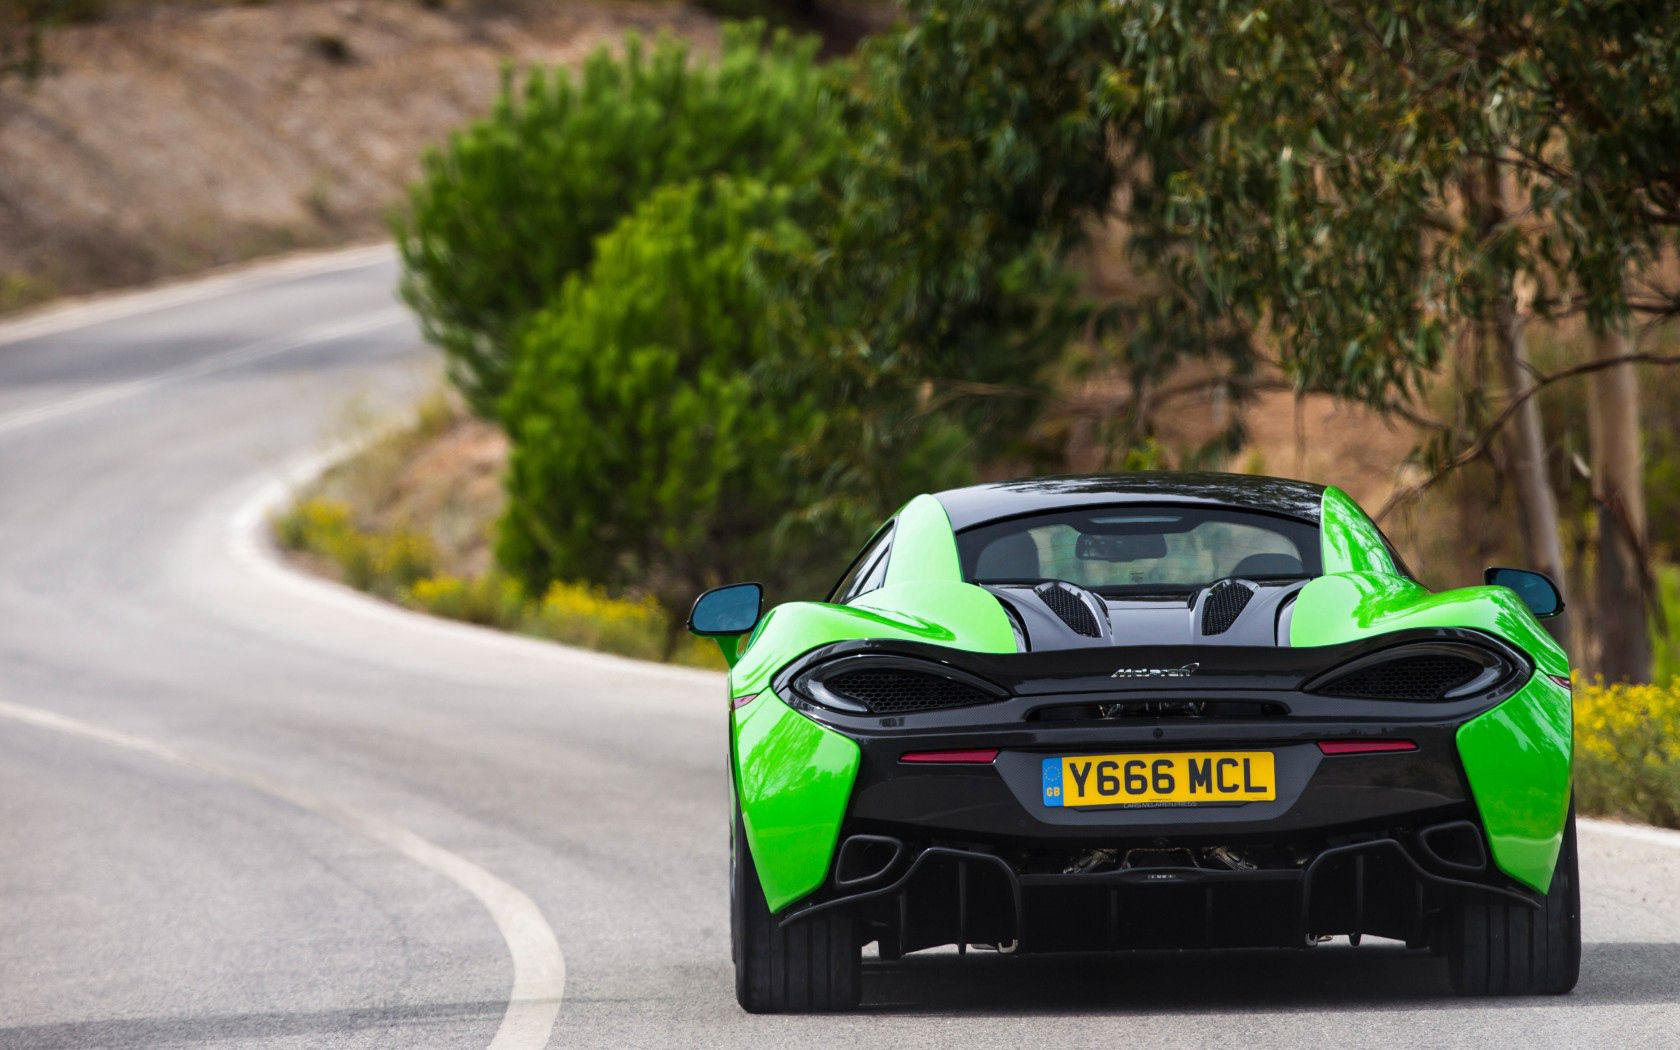 112178 download wallpaper Mclaren, Cars, Back View, Rear View, 570S screensavers and pictures for free